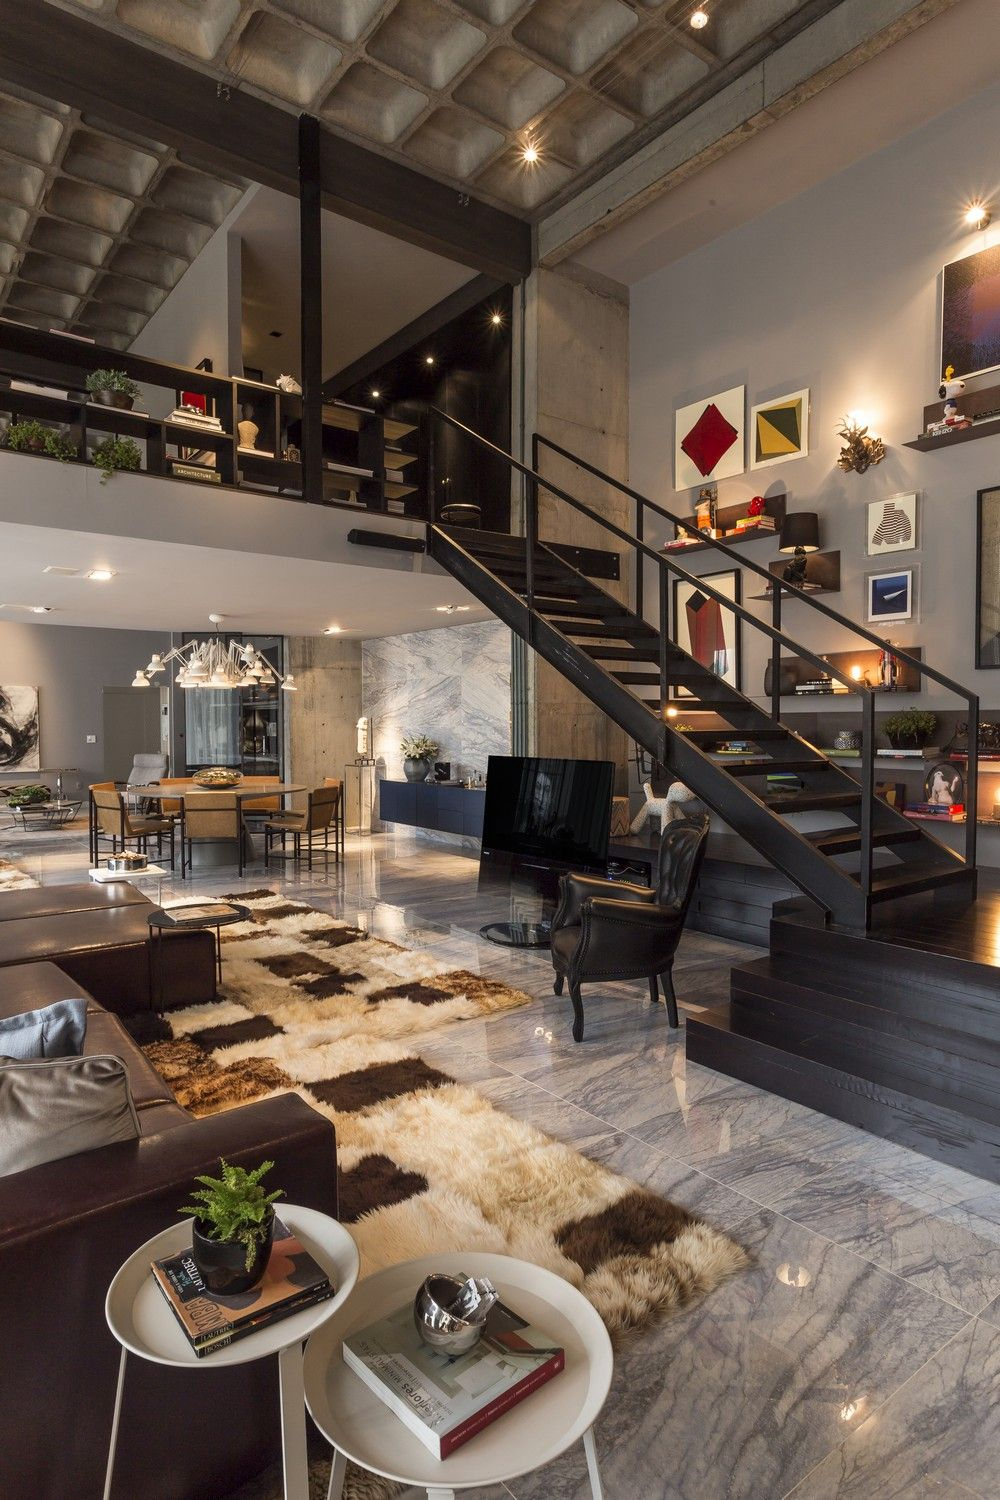 One of my favorite loft designs casadesign interiors did an incredible job designing located in praia brava brazil  modern industrial open also pin by with each new day on home design house rh pinterest